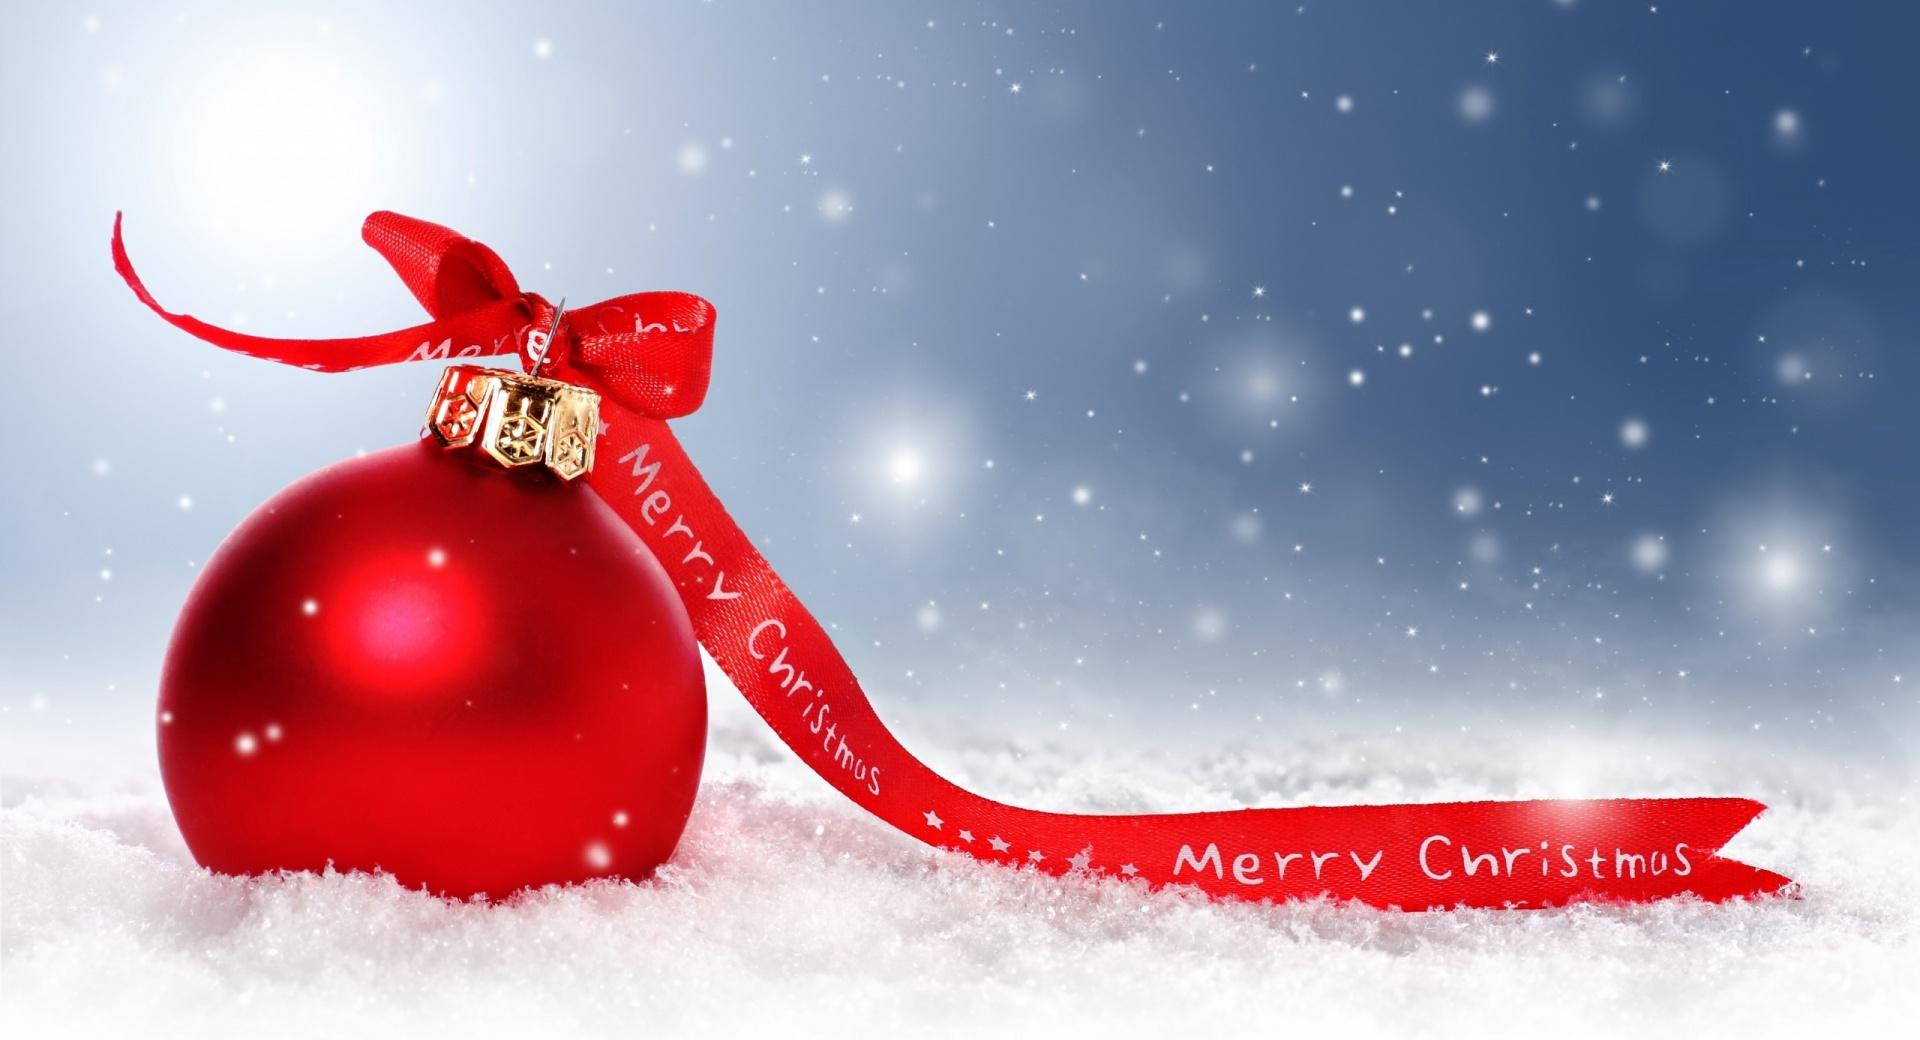 Merry Christmas 2013 wallpapers HD quality